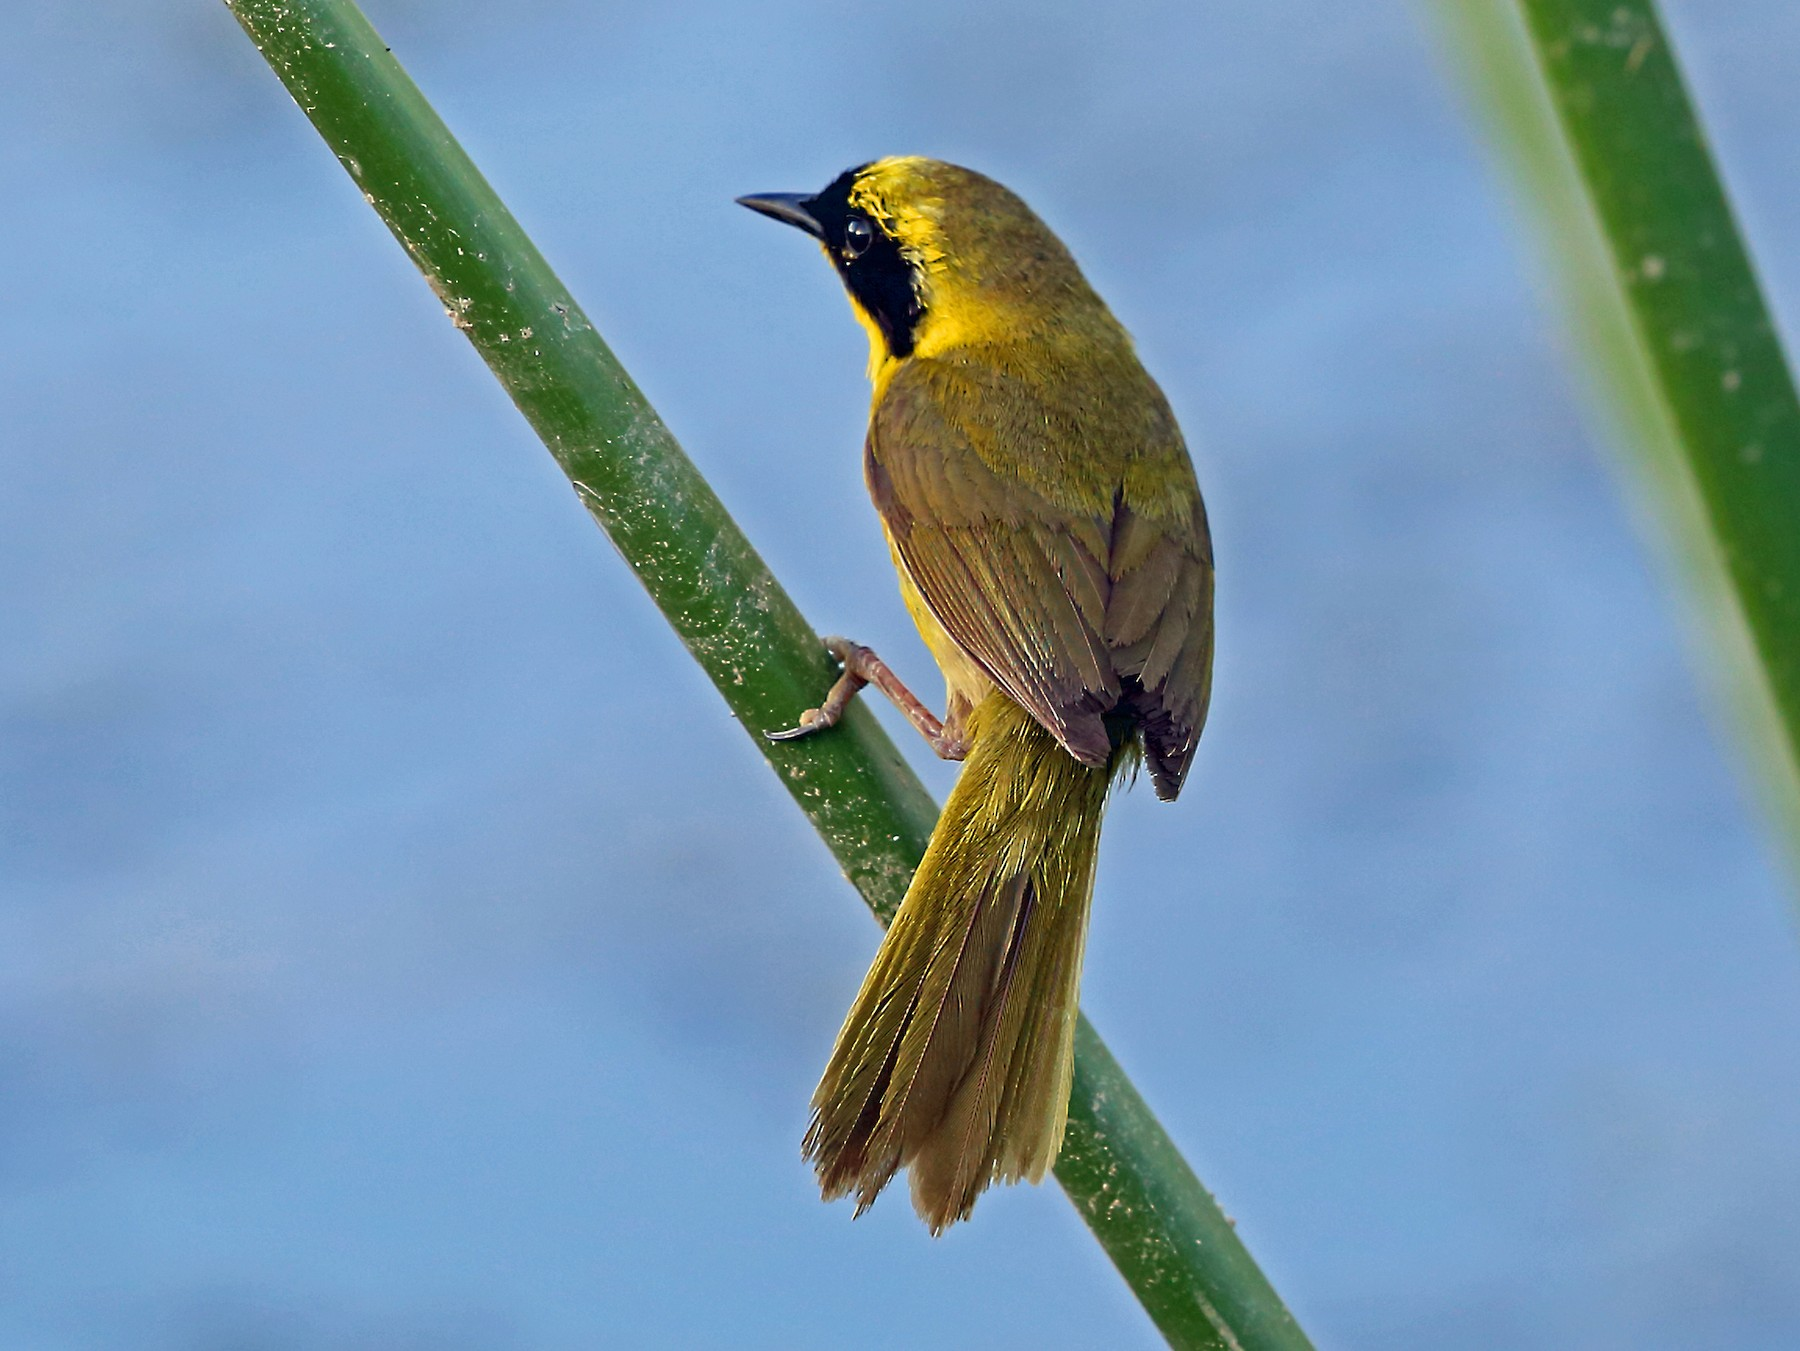 Belding's Yellowthroat - Nigel Voaden